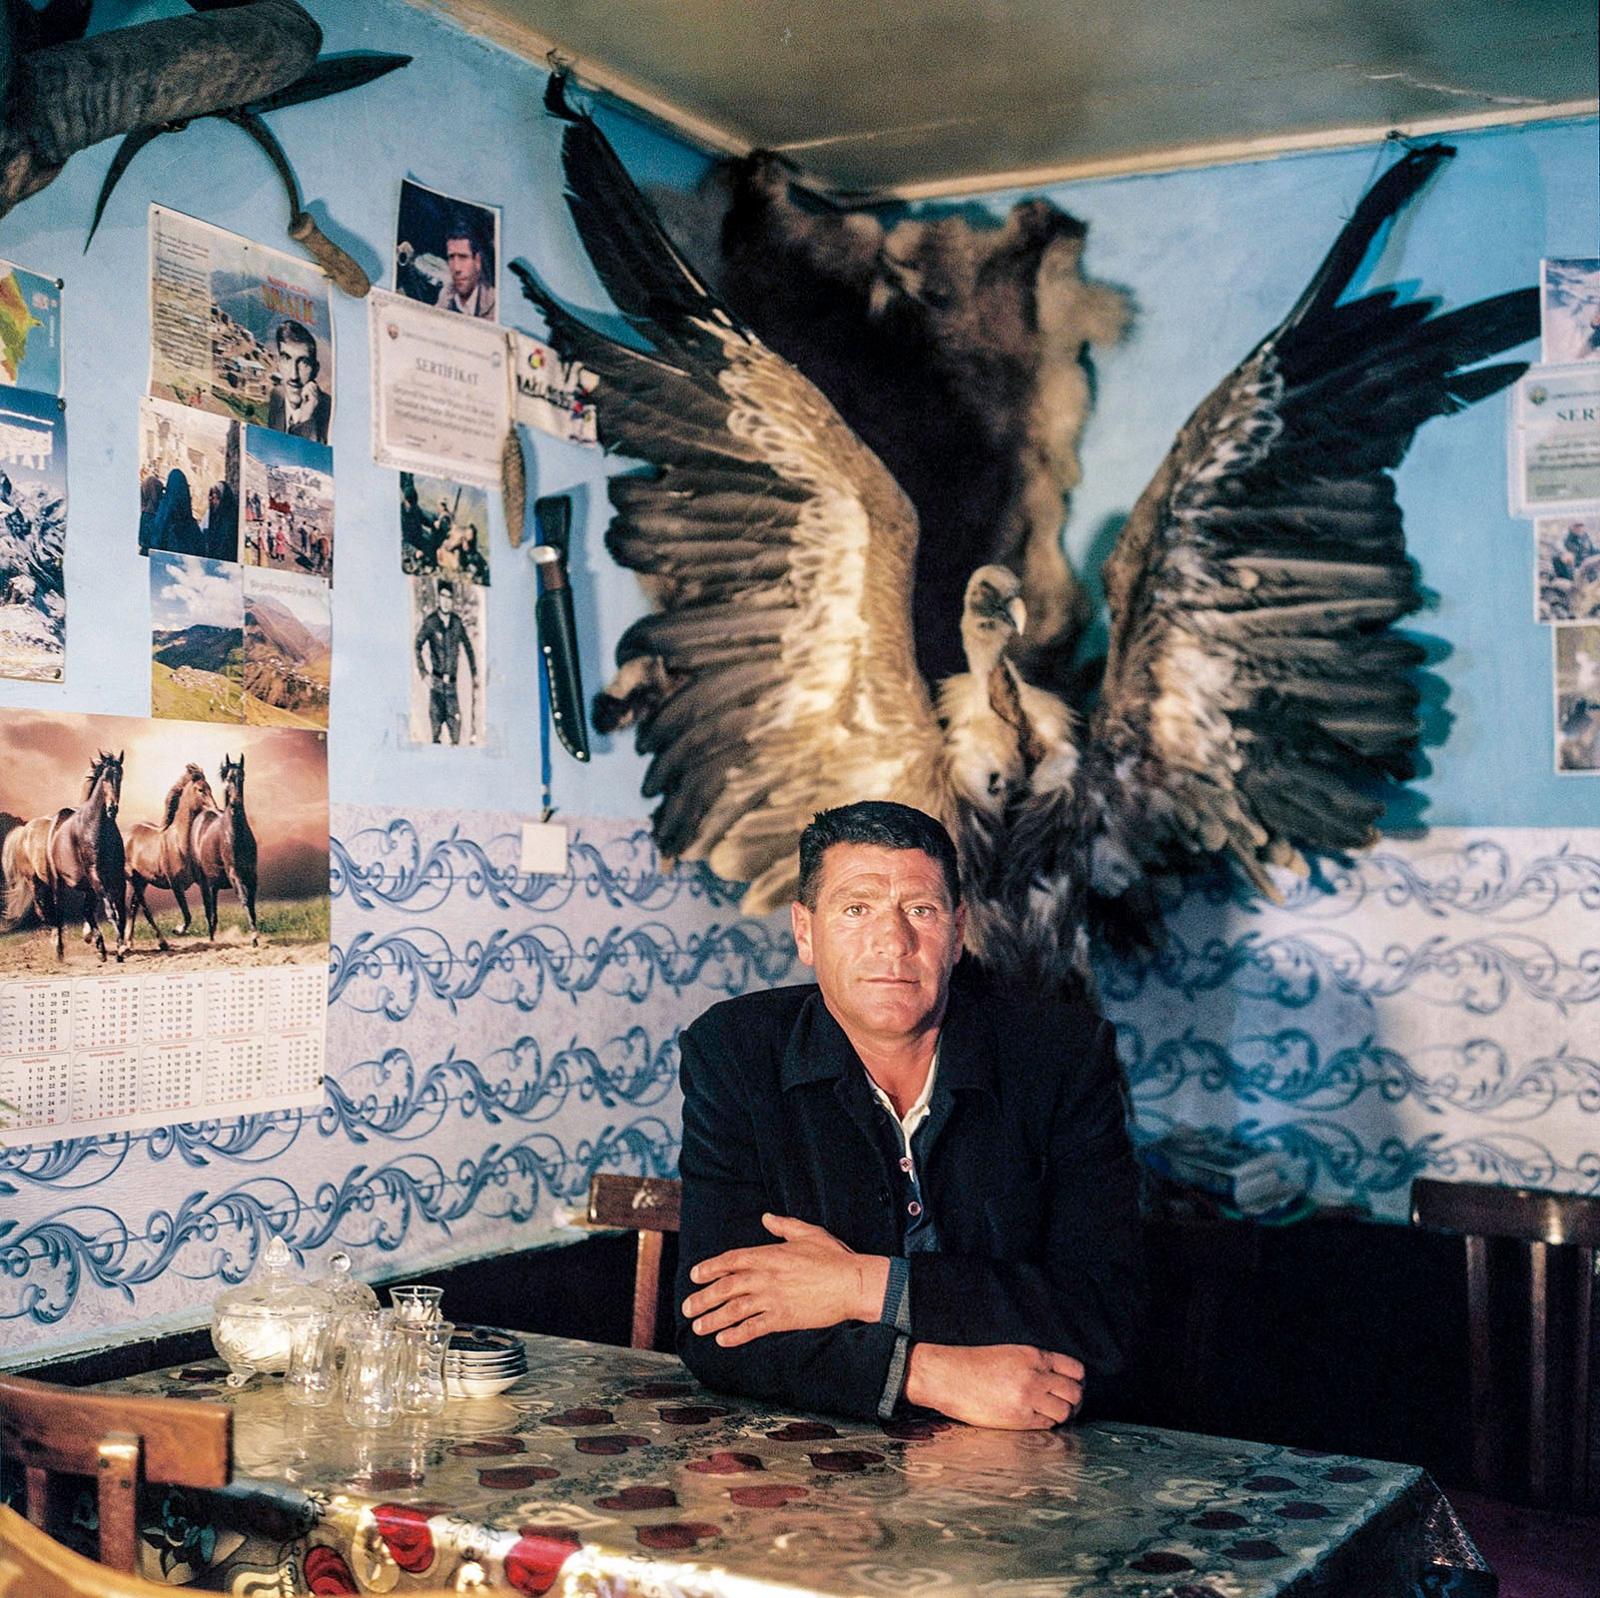 Kabir at home with his hunting trophies. Khinaliq, Azerbaijan. 2018